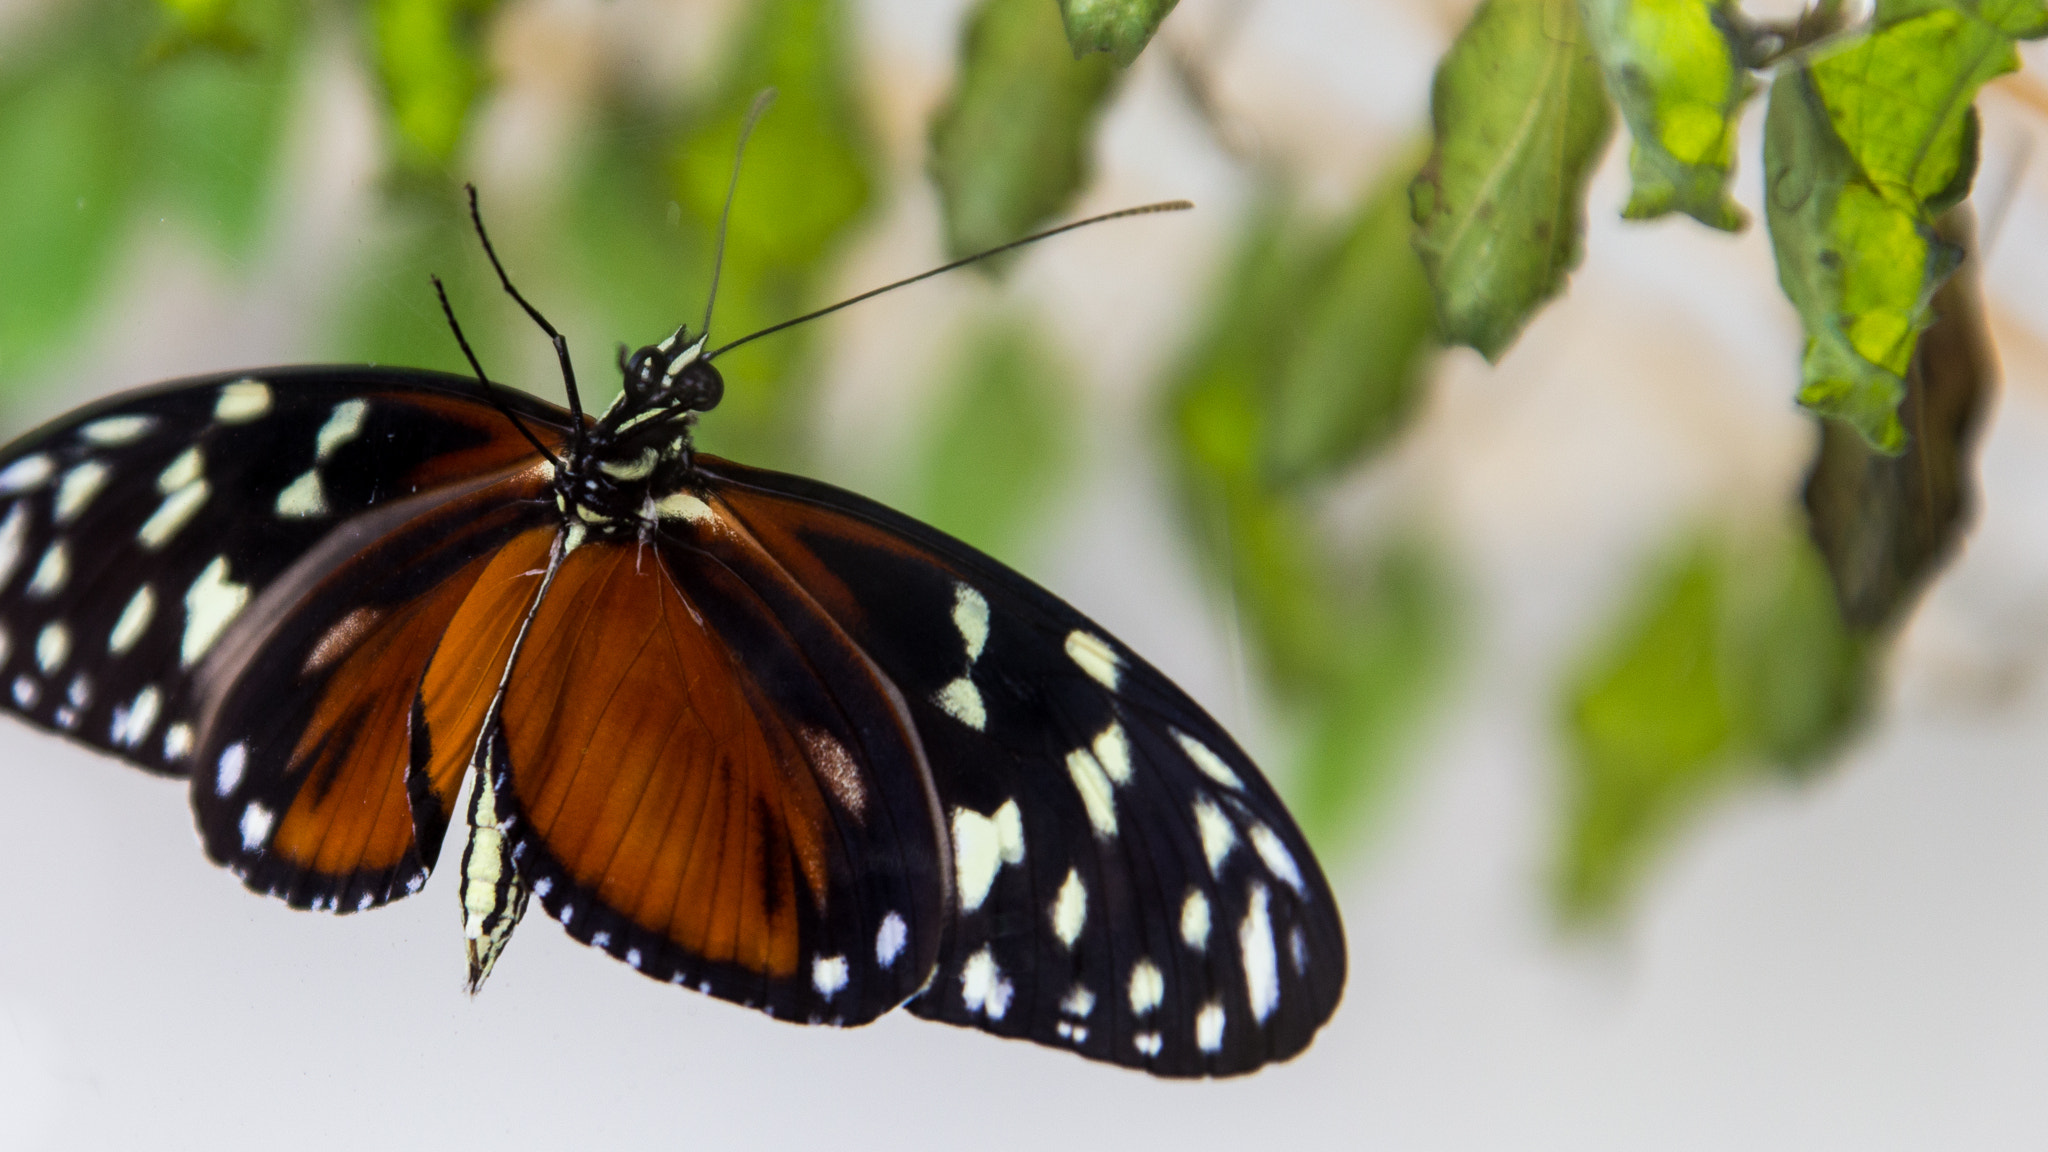 Photograph A Butterfly Born by Anjan Upadhya on 500px